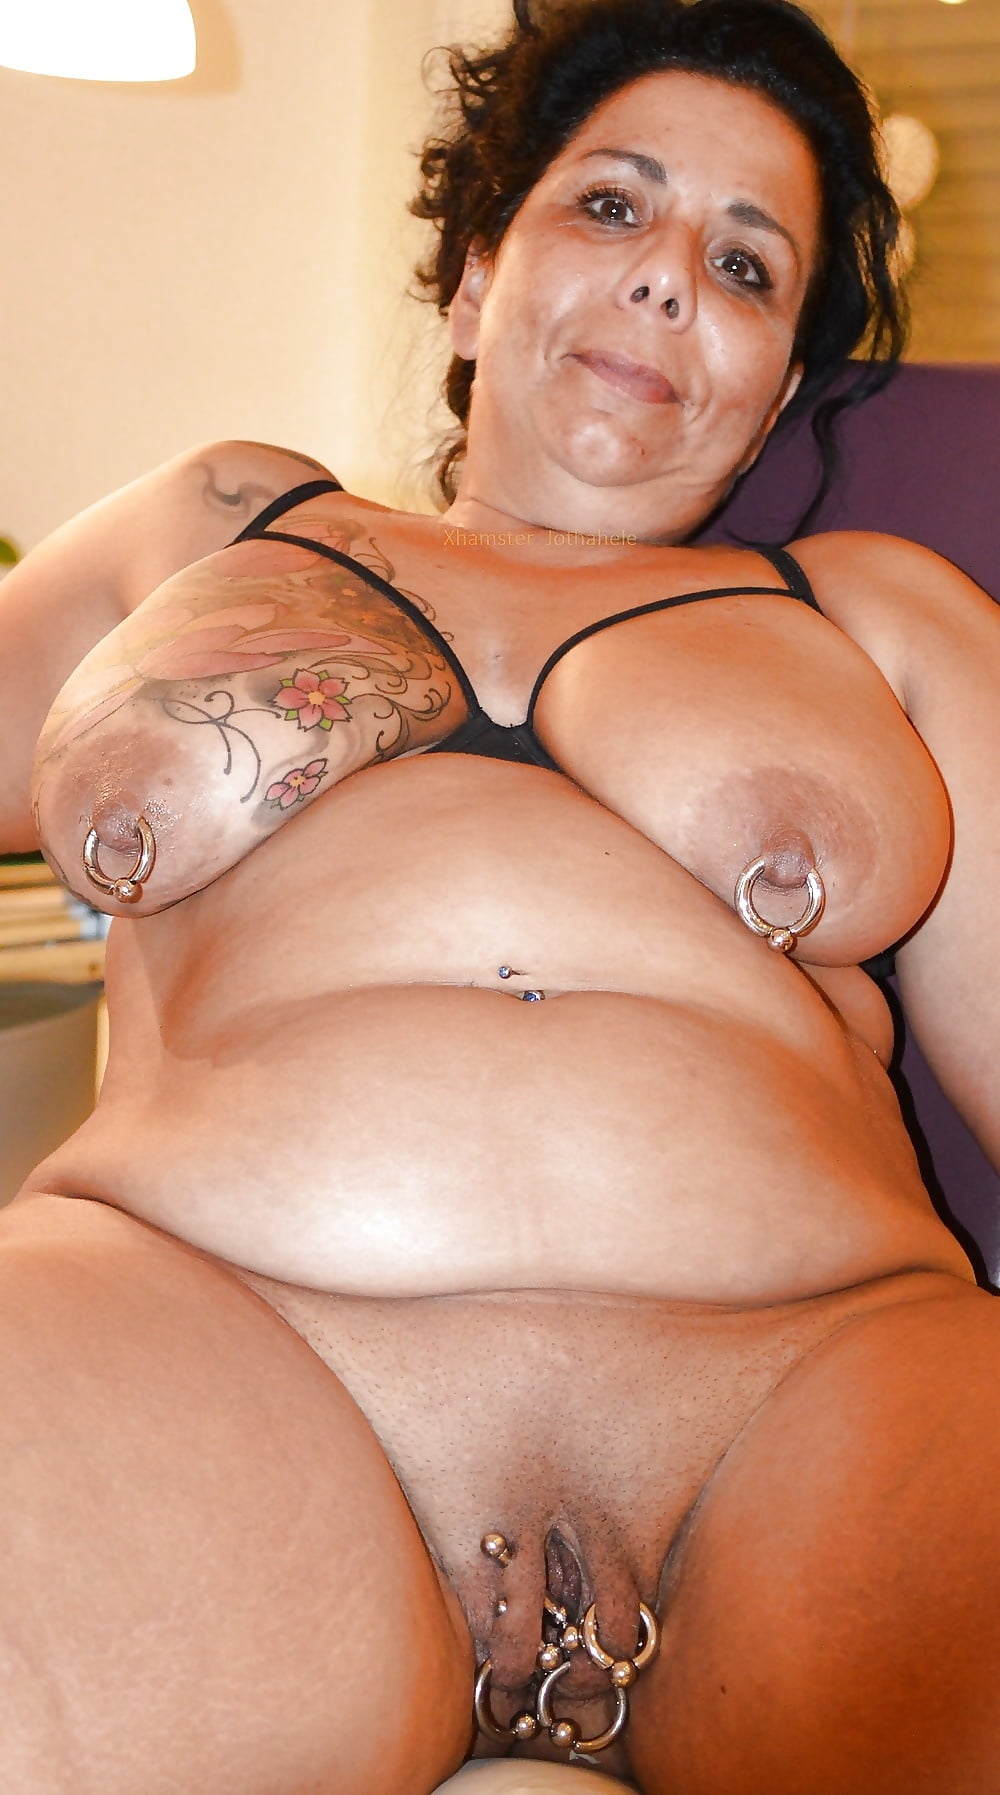 Fat pumped pierced pussy fisted